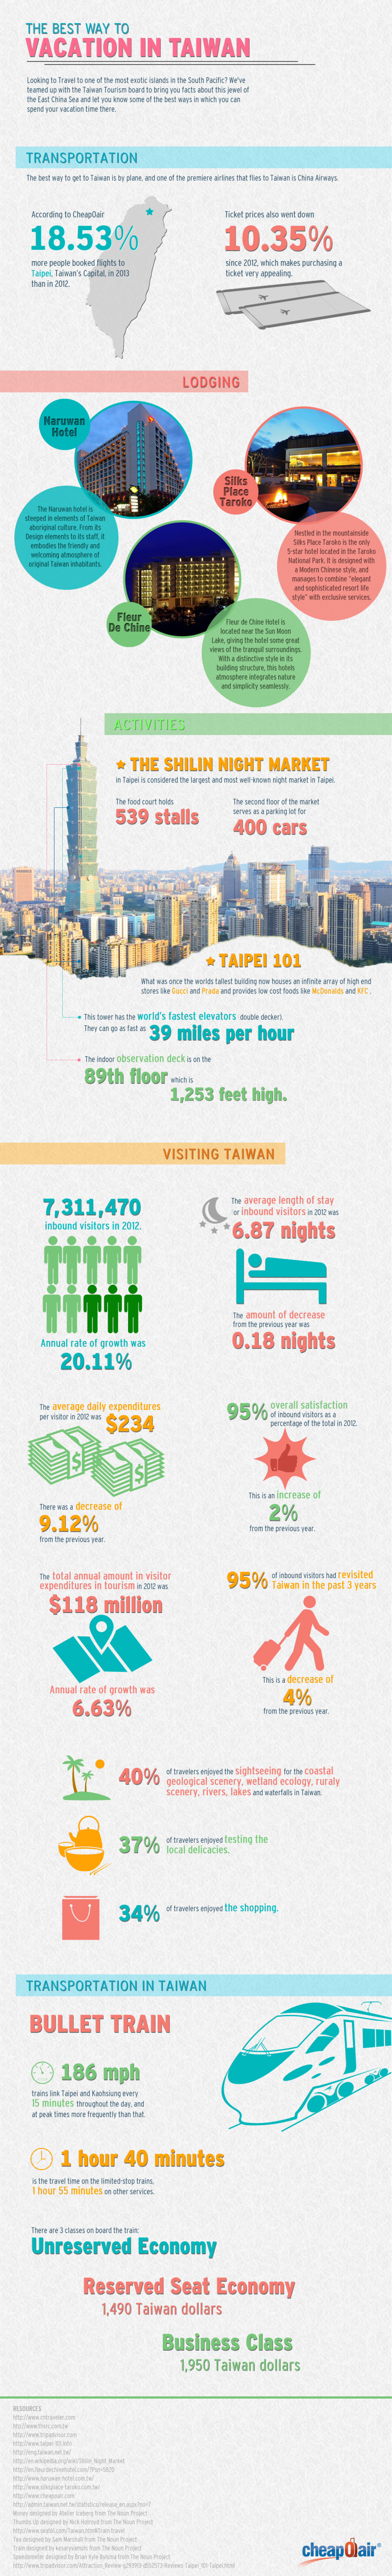 The Best Way to Vacation in Taiwan Infographic